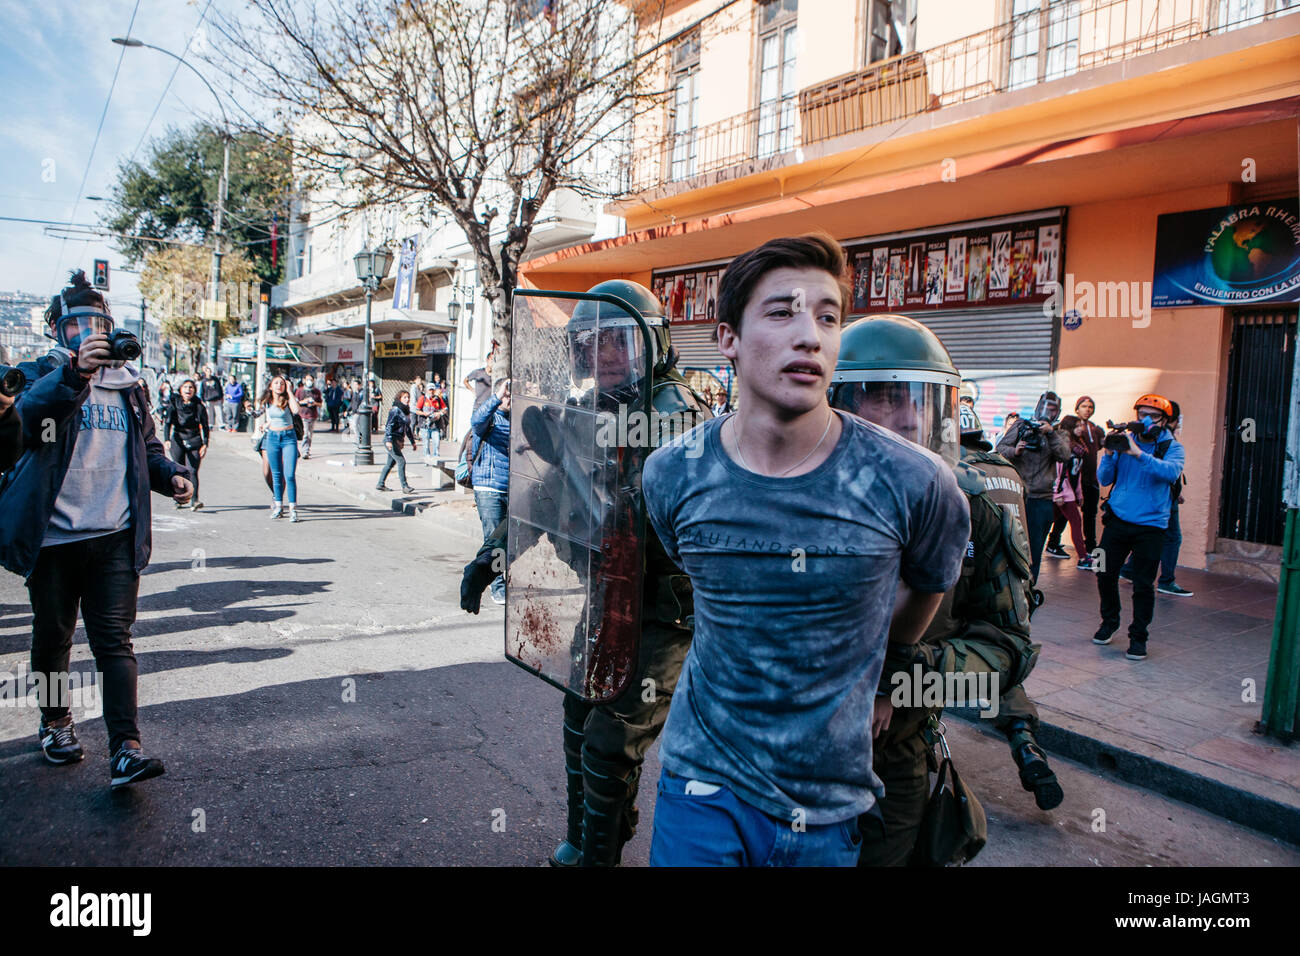 Valparaiso, Chile - June 01, 2017: Protester arrested by the chilean riot police during a protest in the center - Stock Image